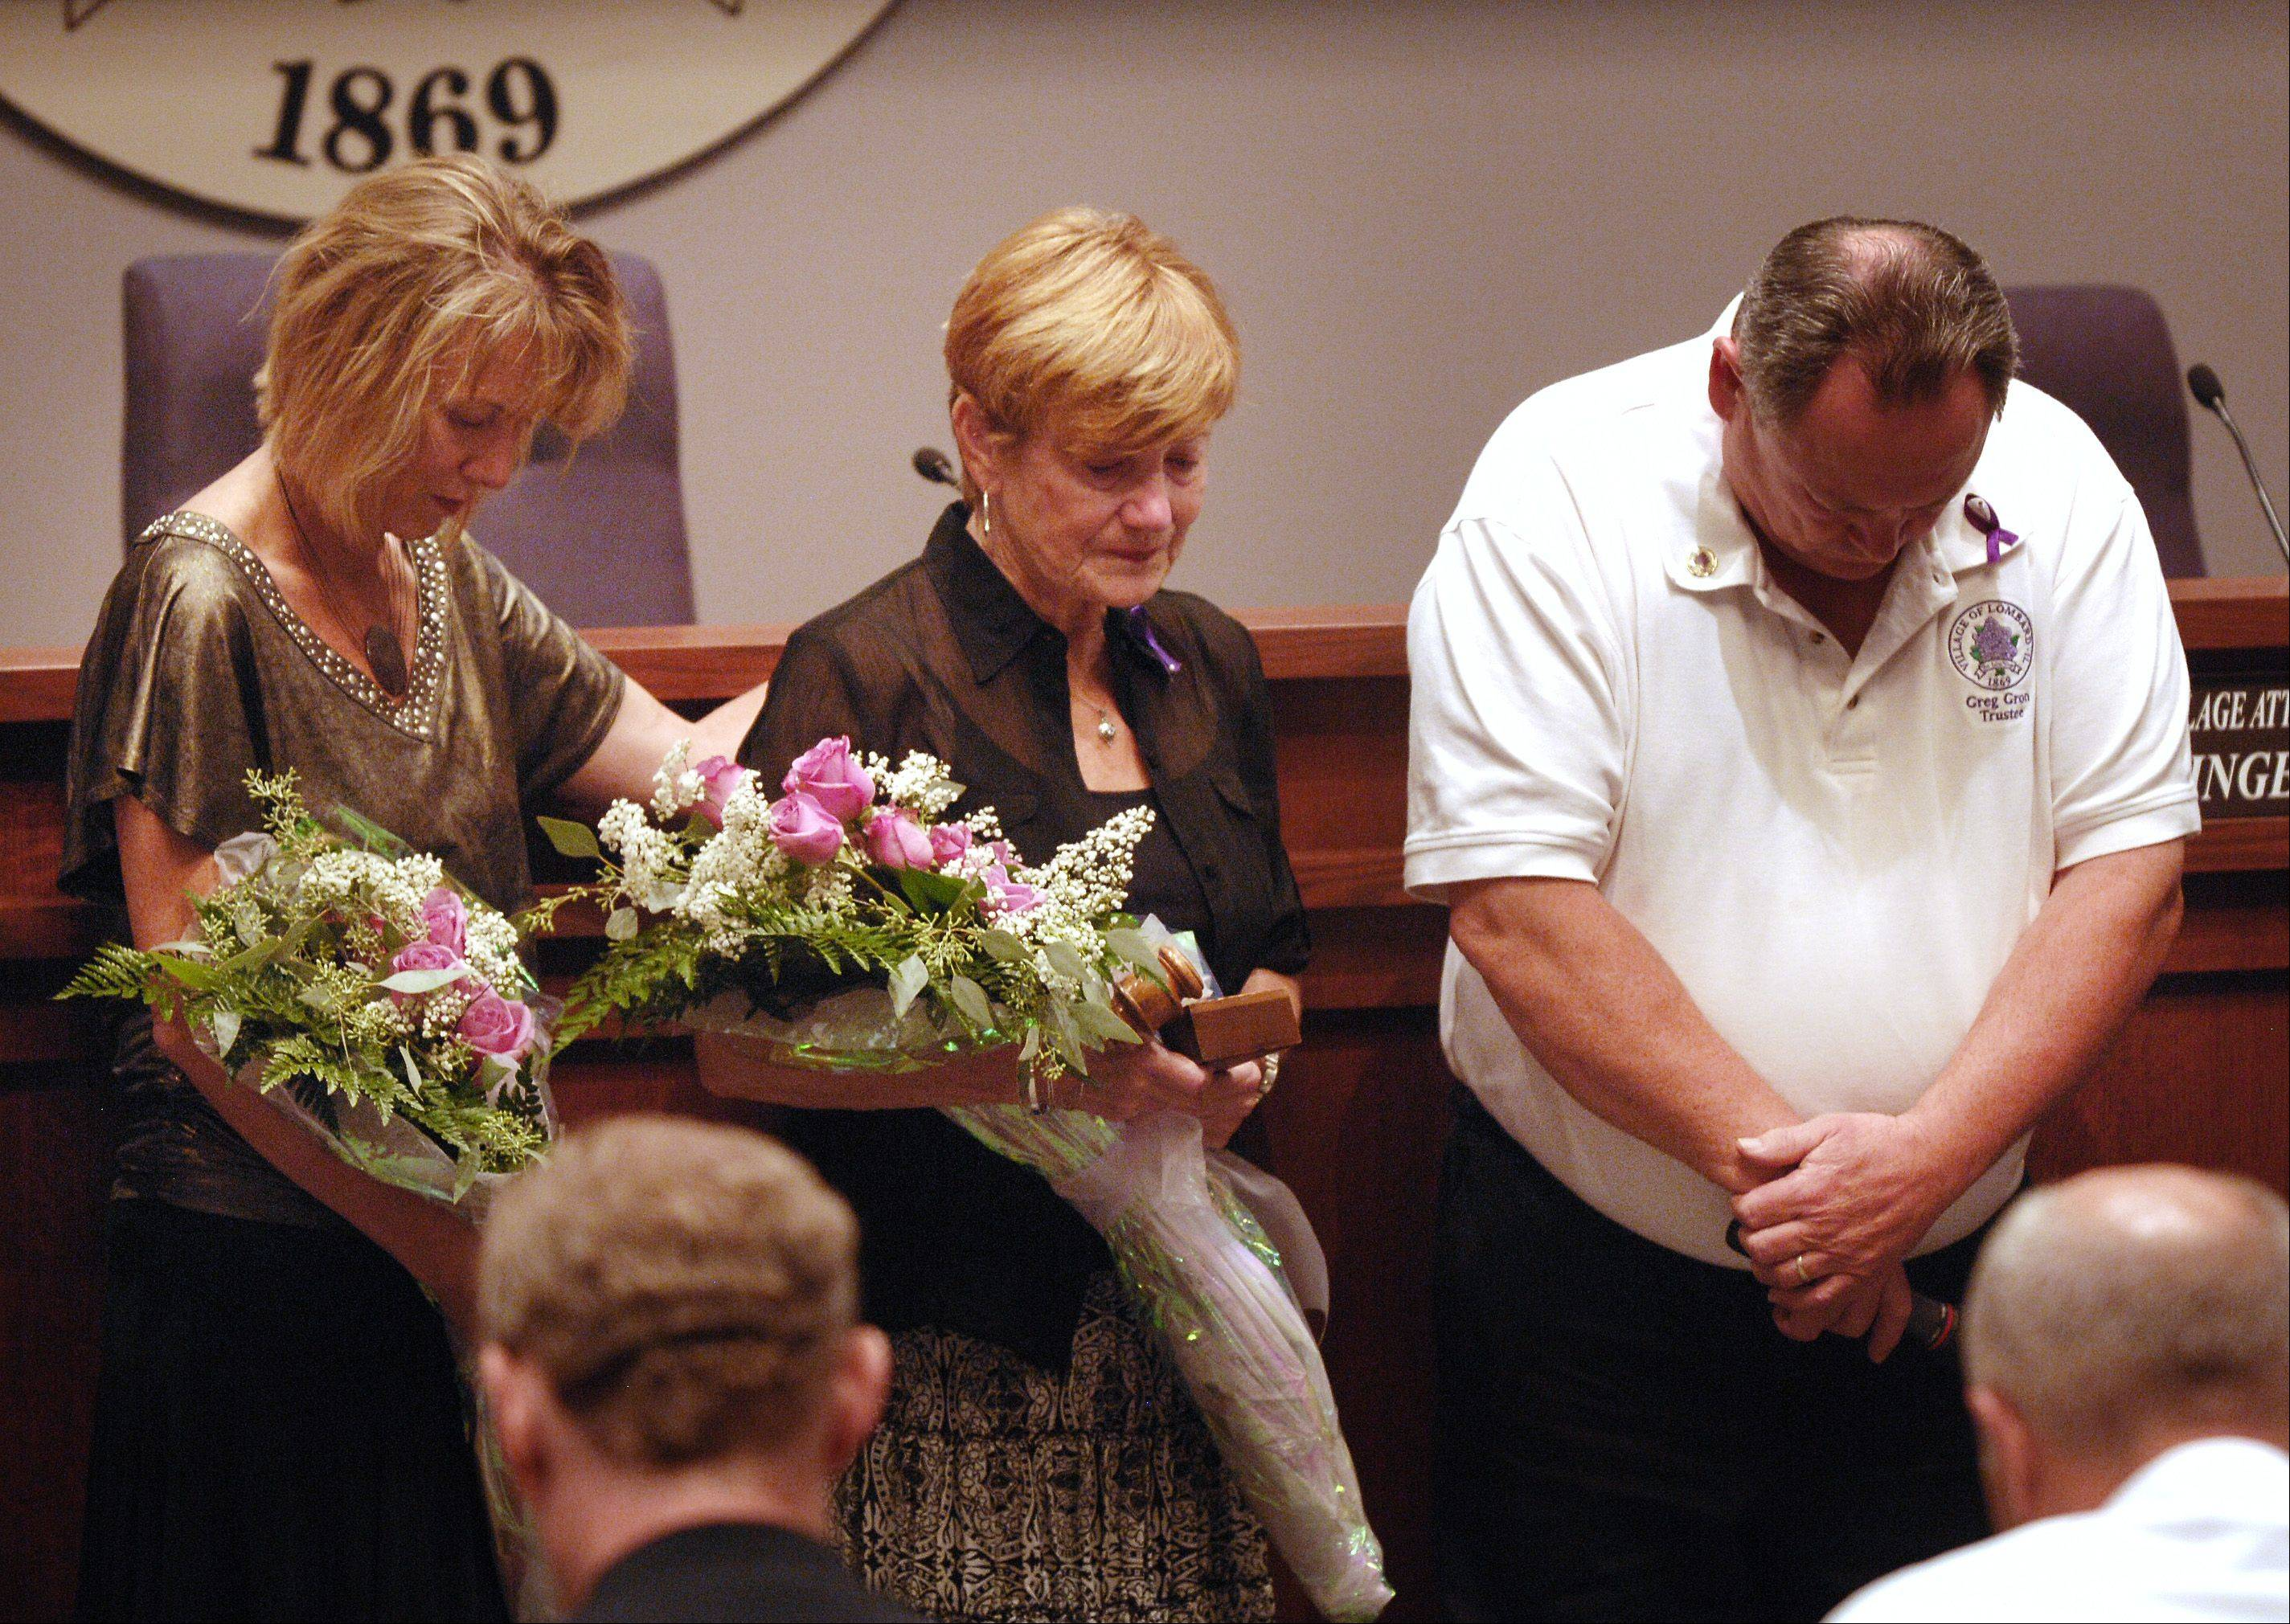 Donna Fruehe, daughter, Eileen Mueller, wife, and Lombard President Pro Tem Greg Gron honor the late Village President President Bill Mueller, who died Aug. 18, during a moment of silence on Thursday.